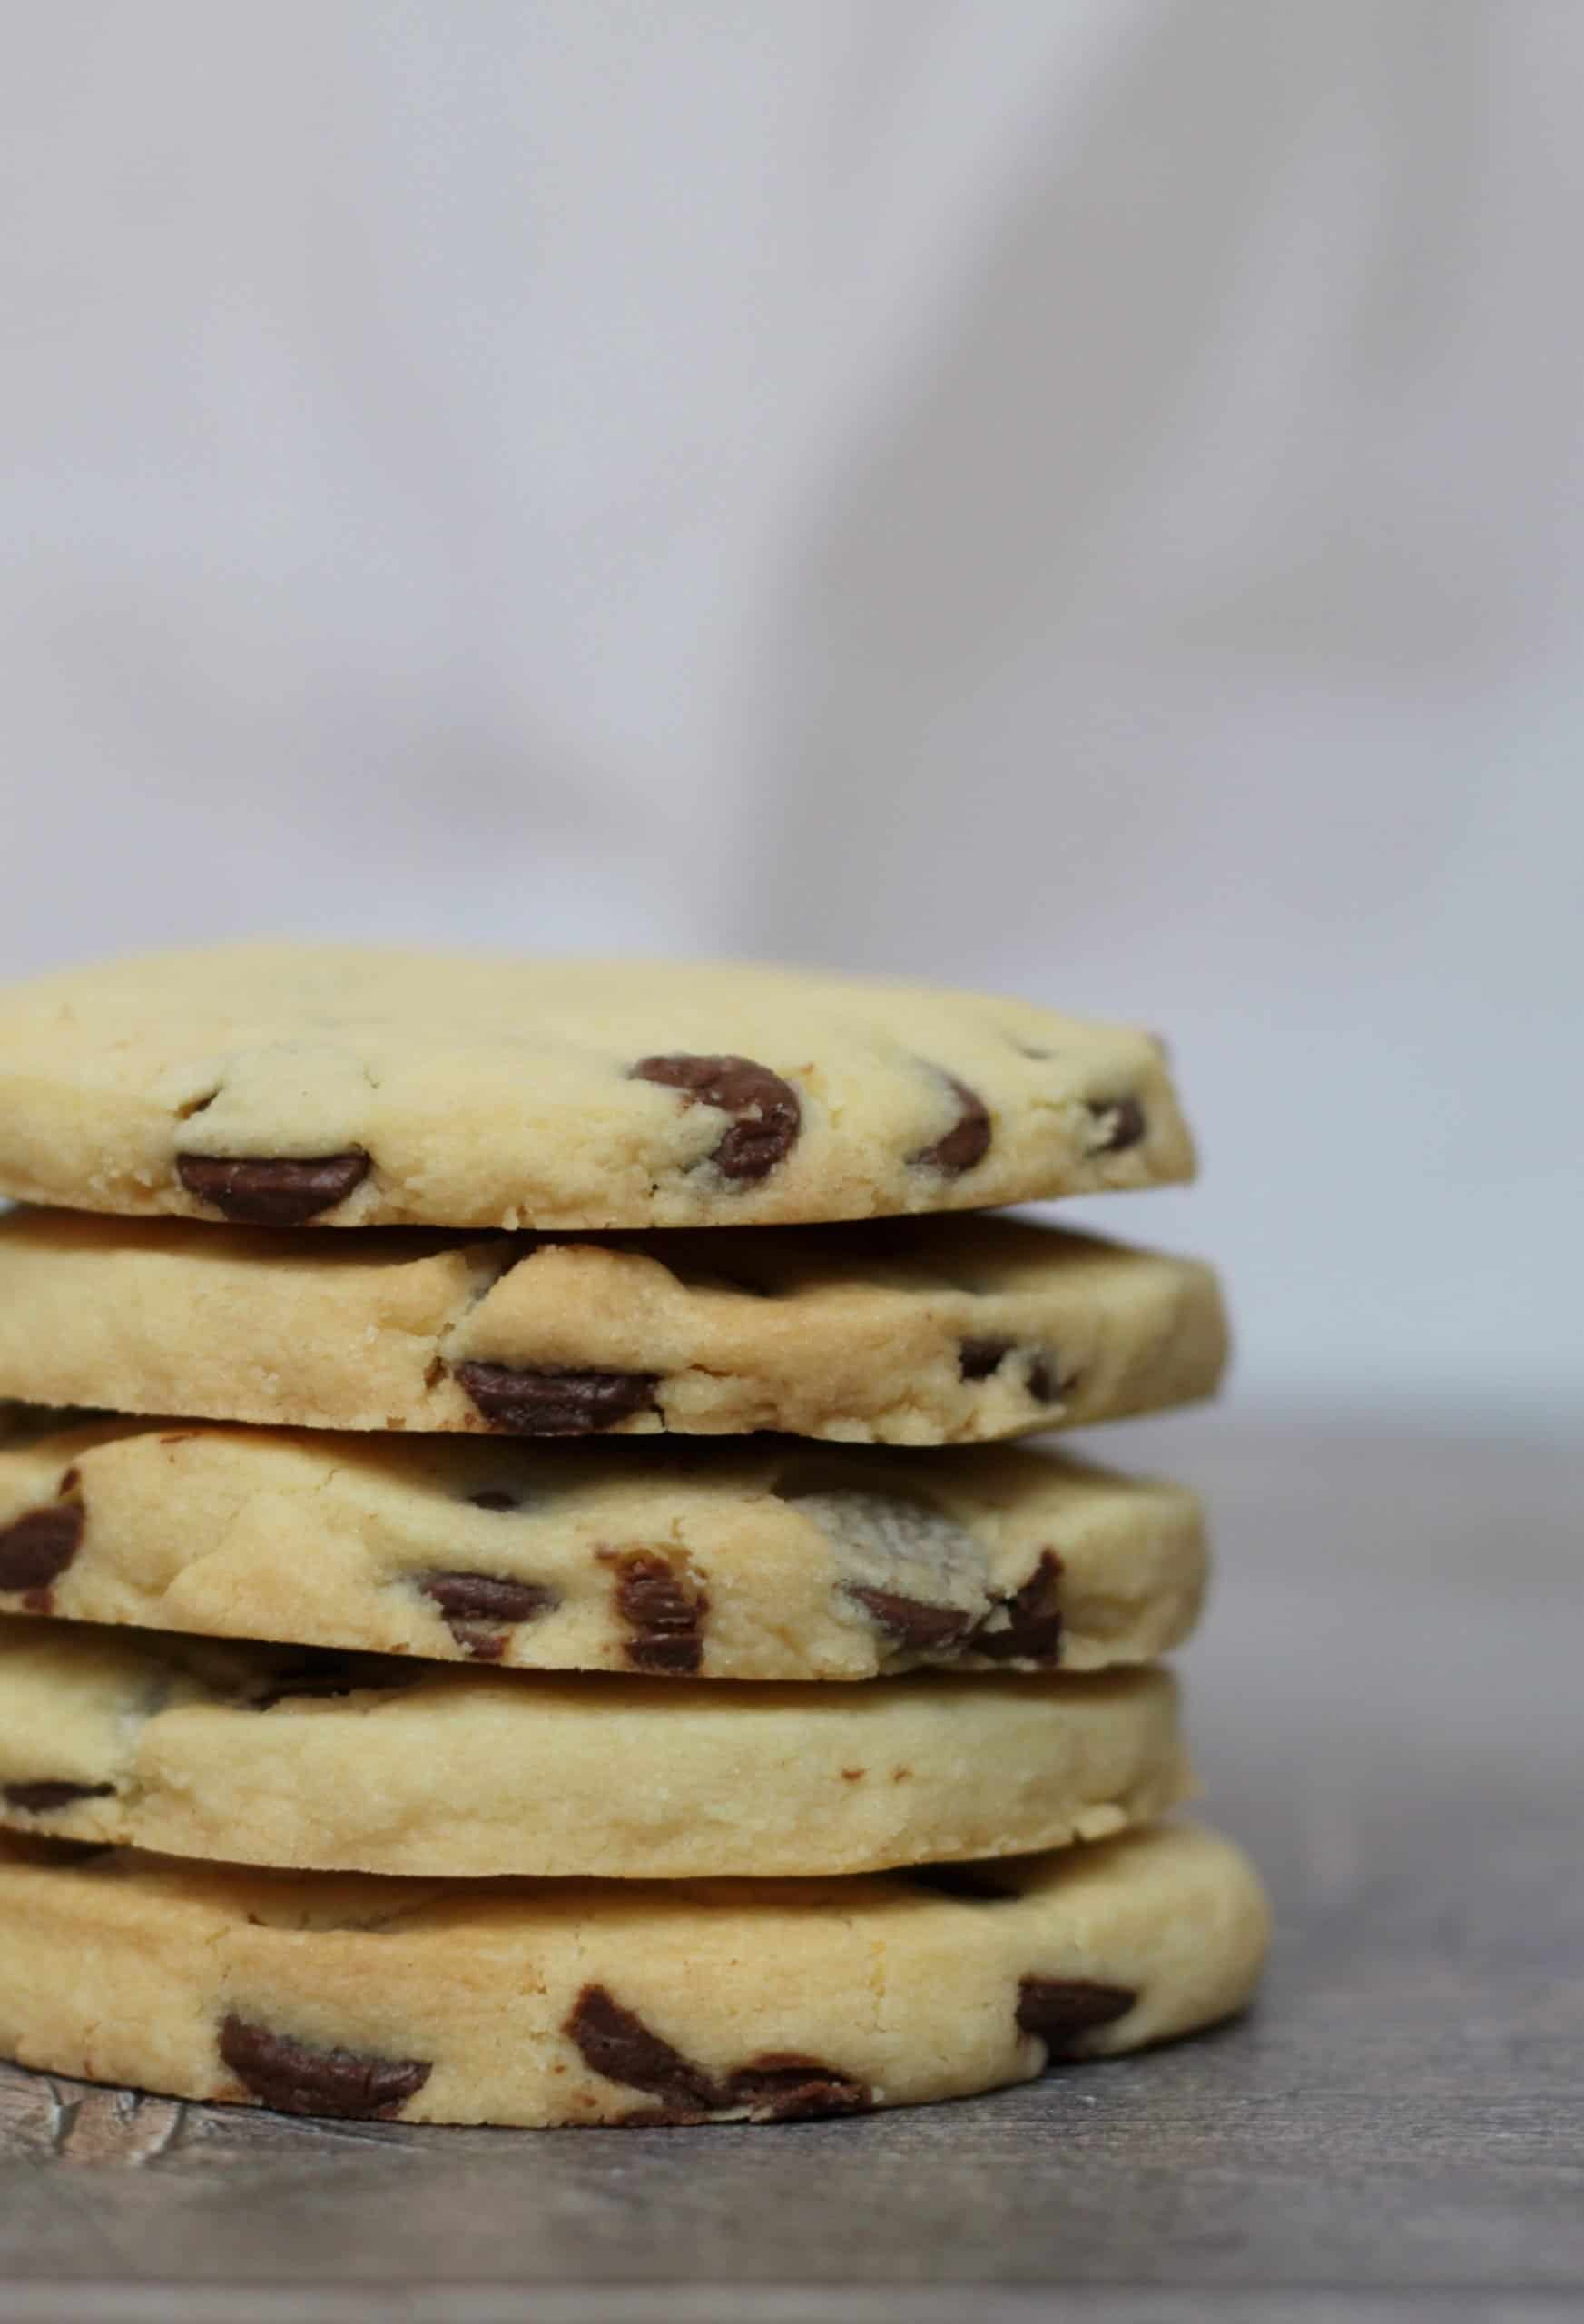 GLUTEN FREE CHOCOLATE CHIP SHORTBREAD COOKIES 4